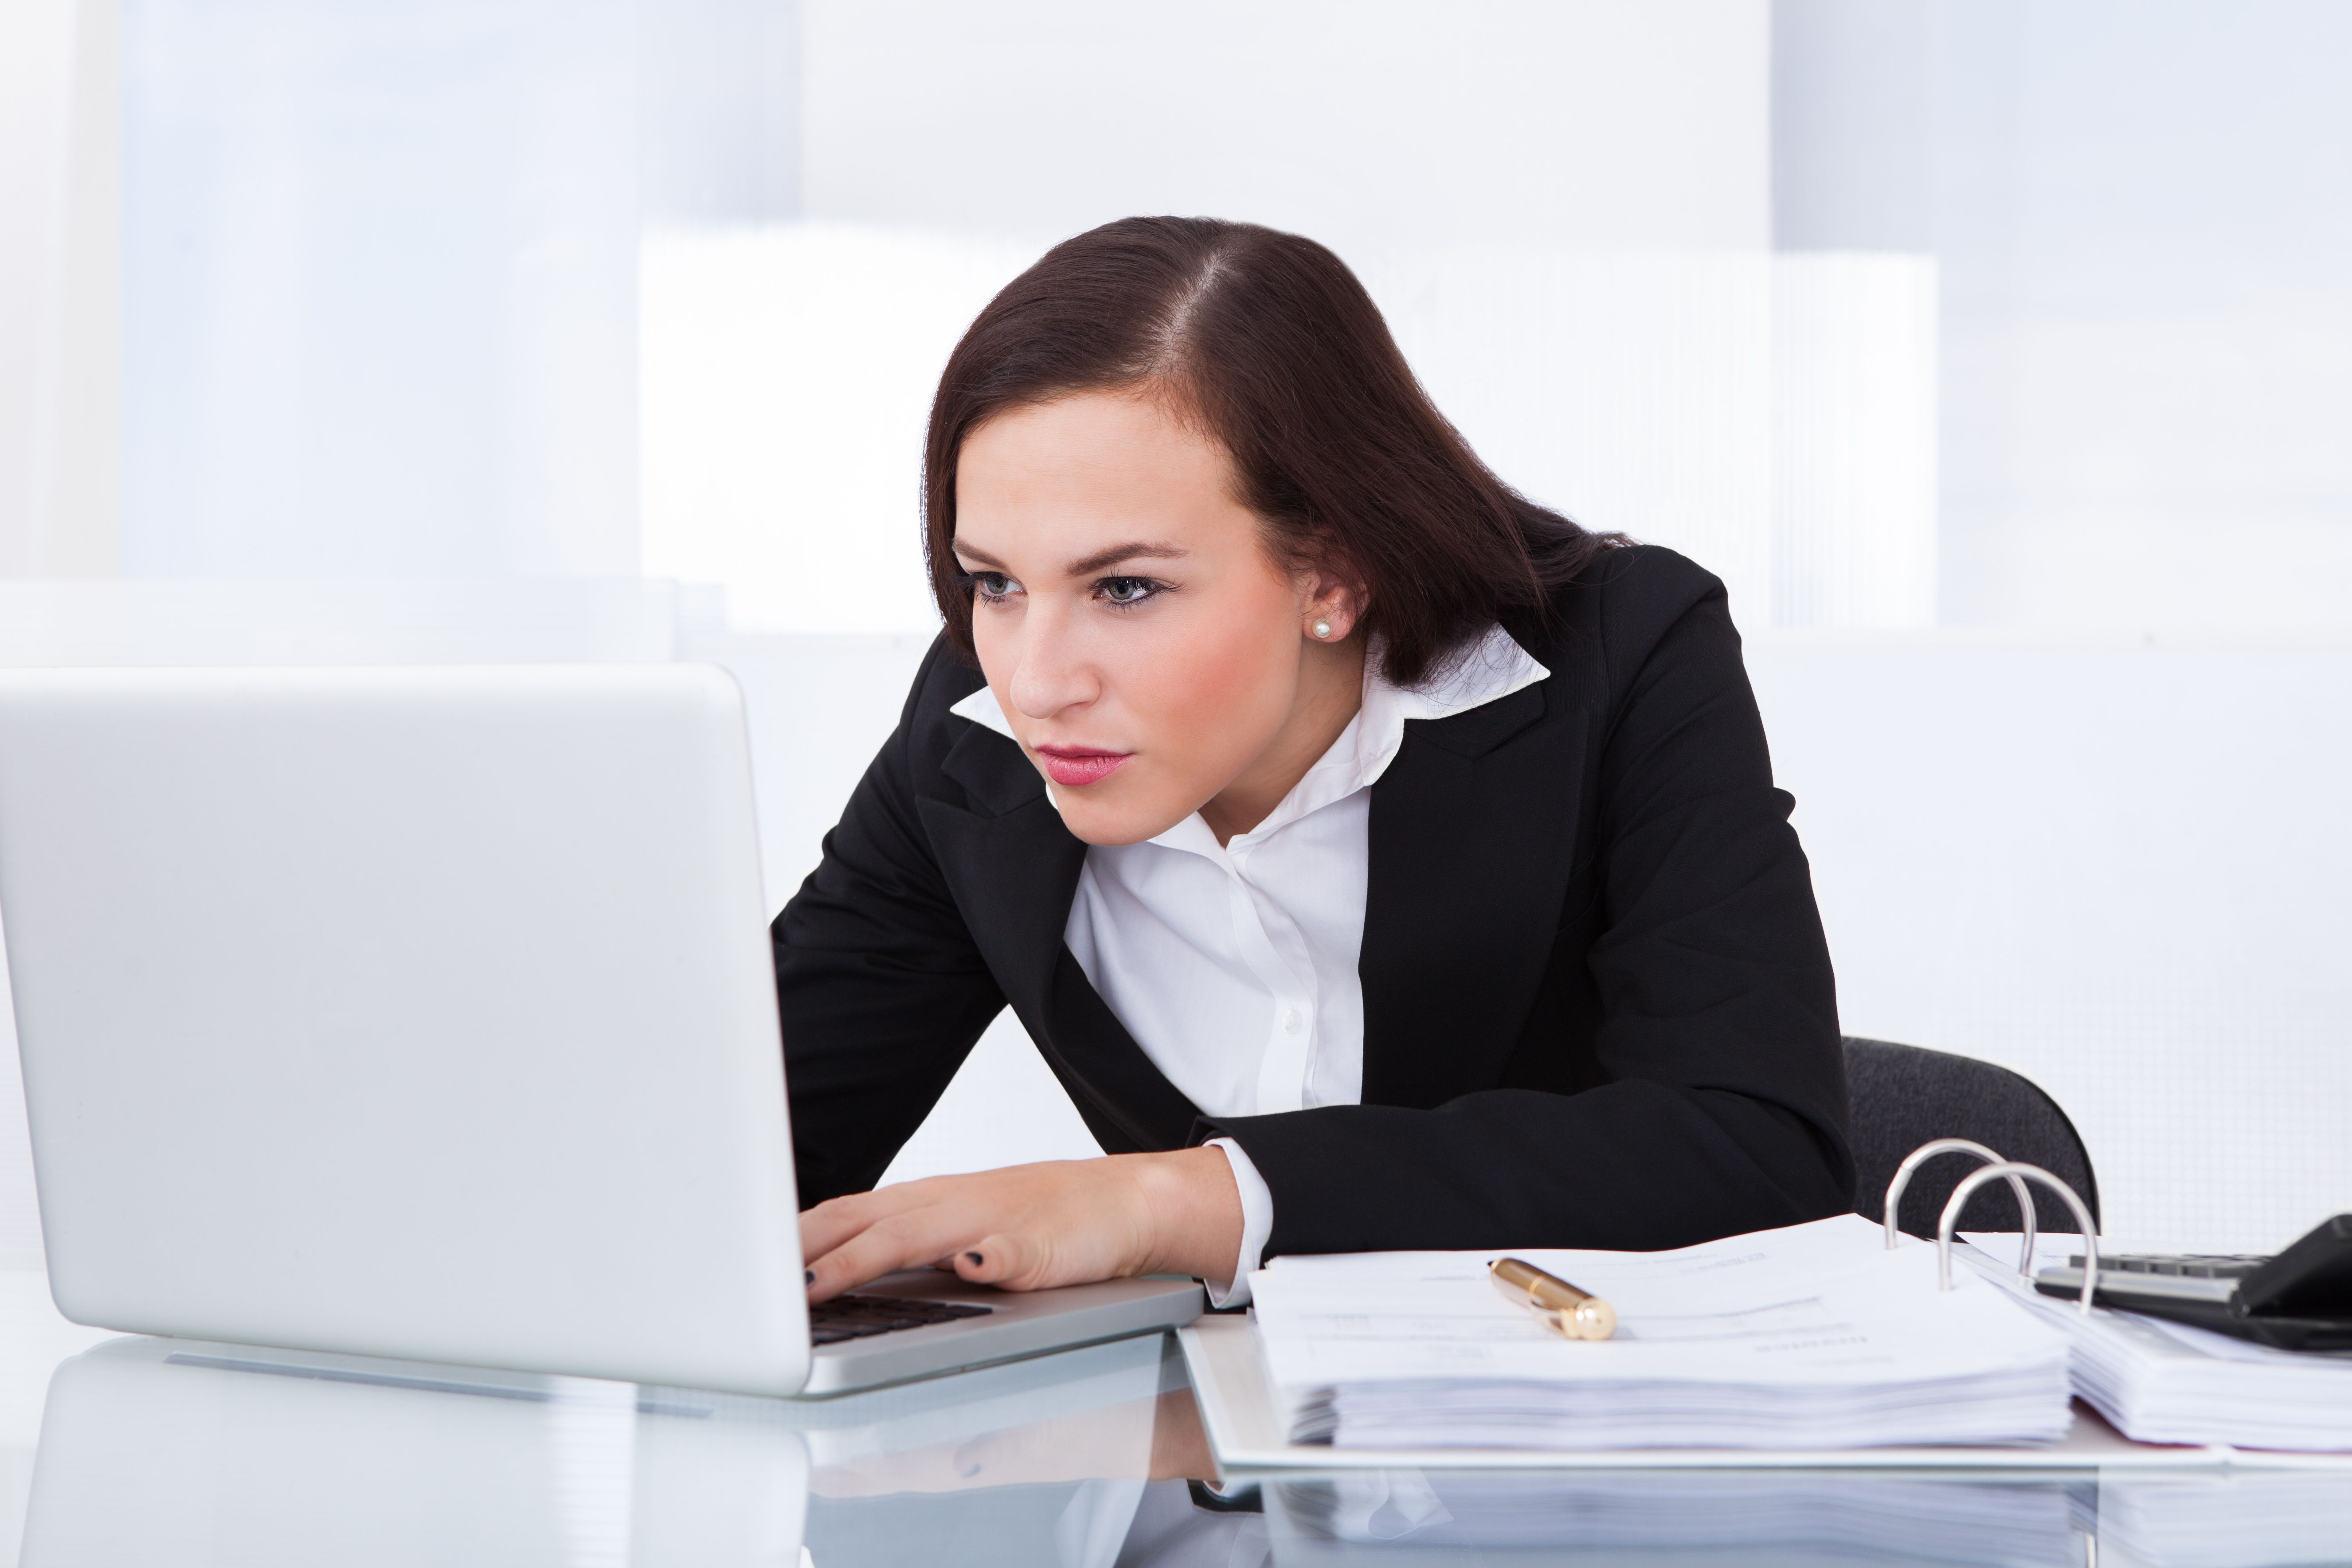 Woman craning her neck to see her laptop screen.